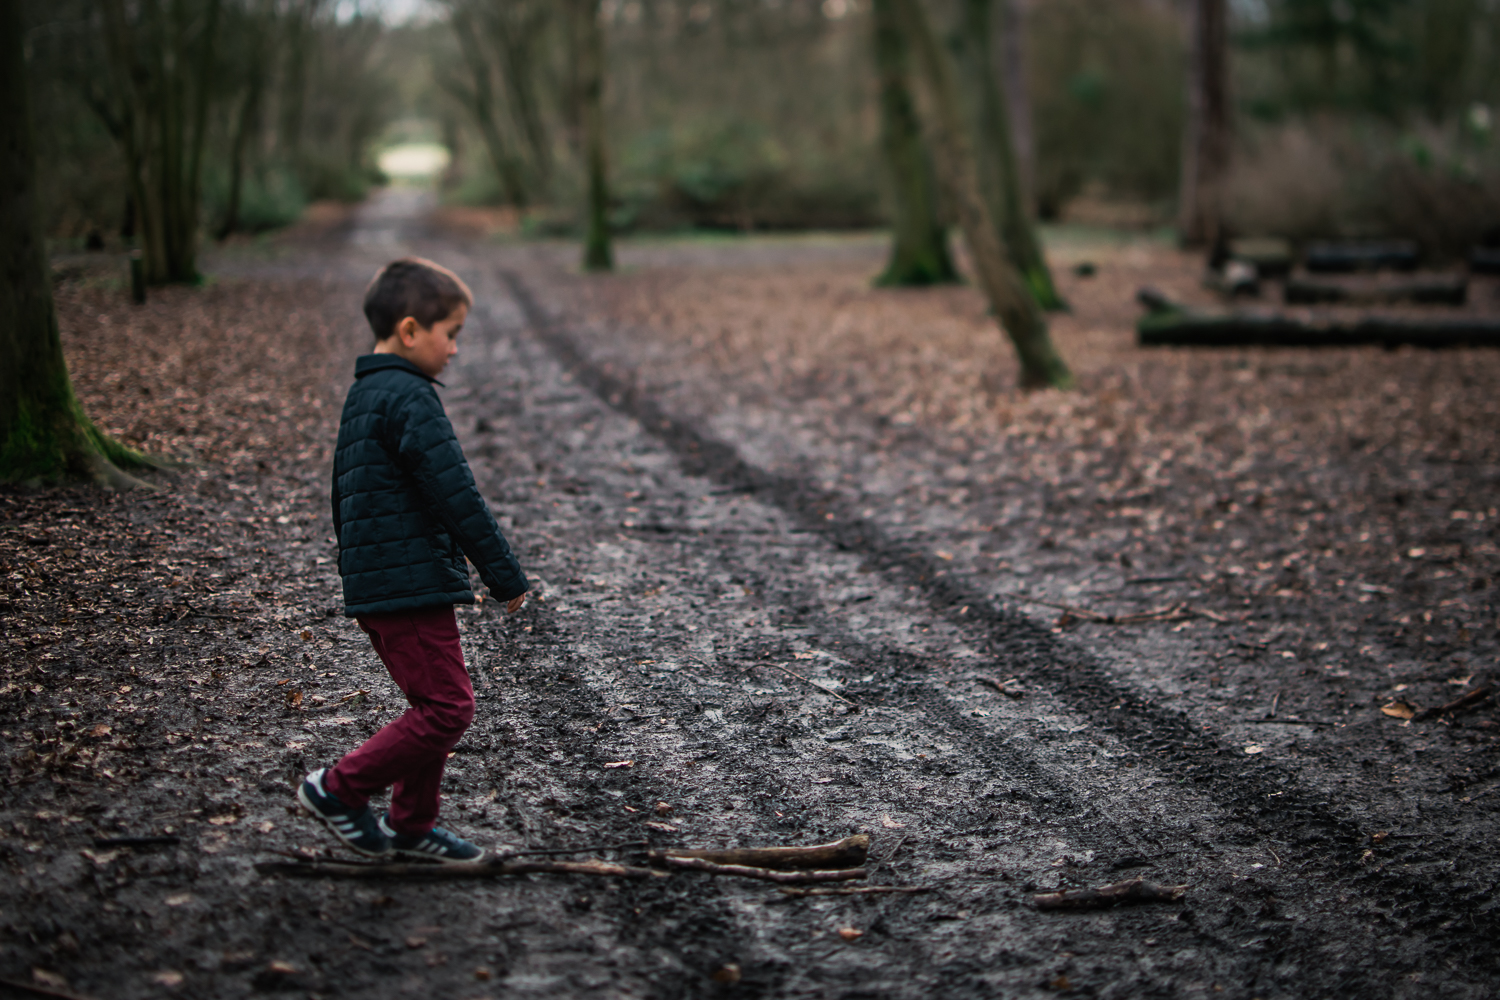 Boy walking across a muddy track in Hinchingbrooke Park, Hunting